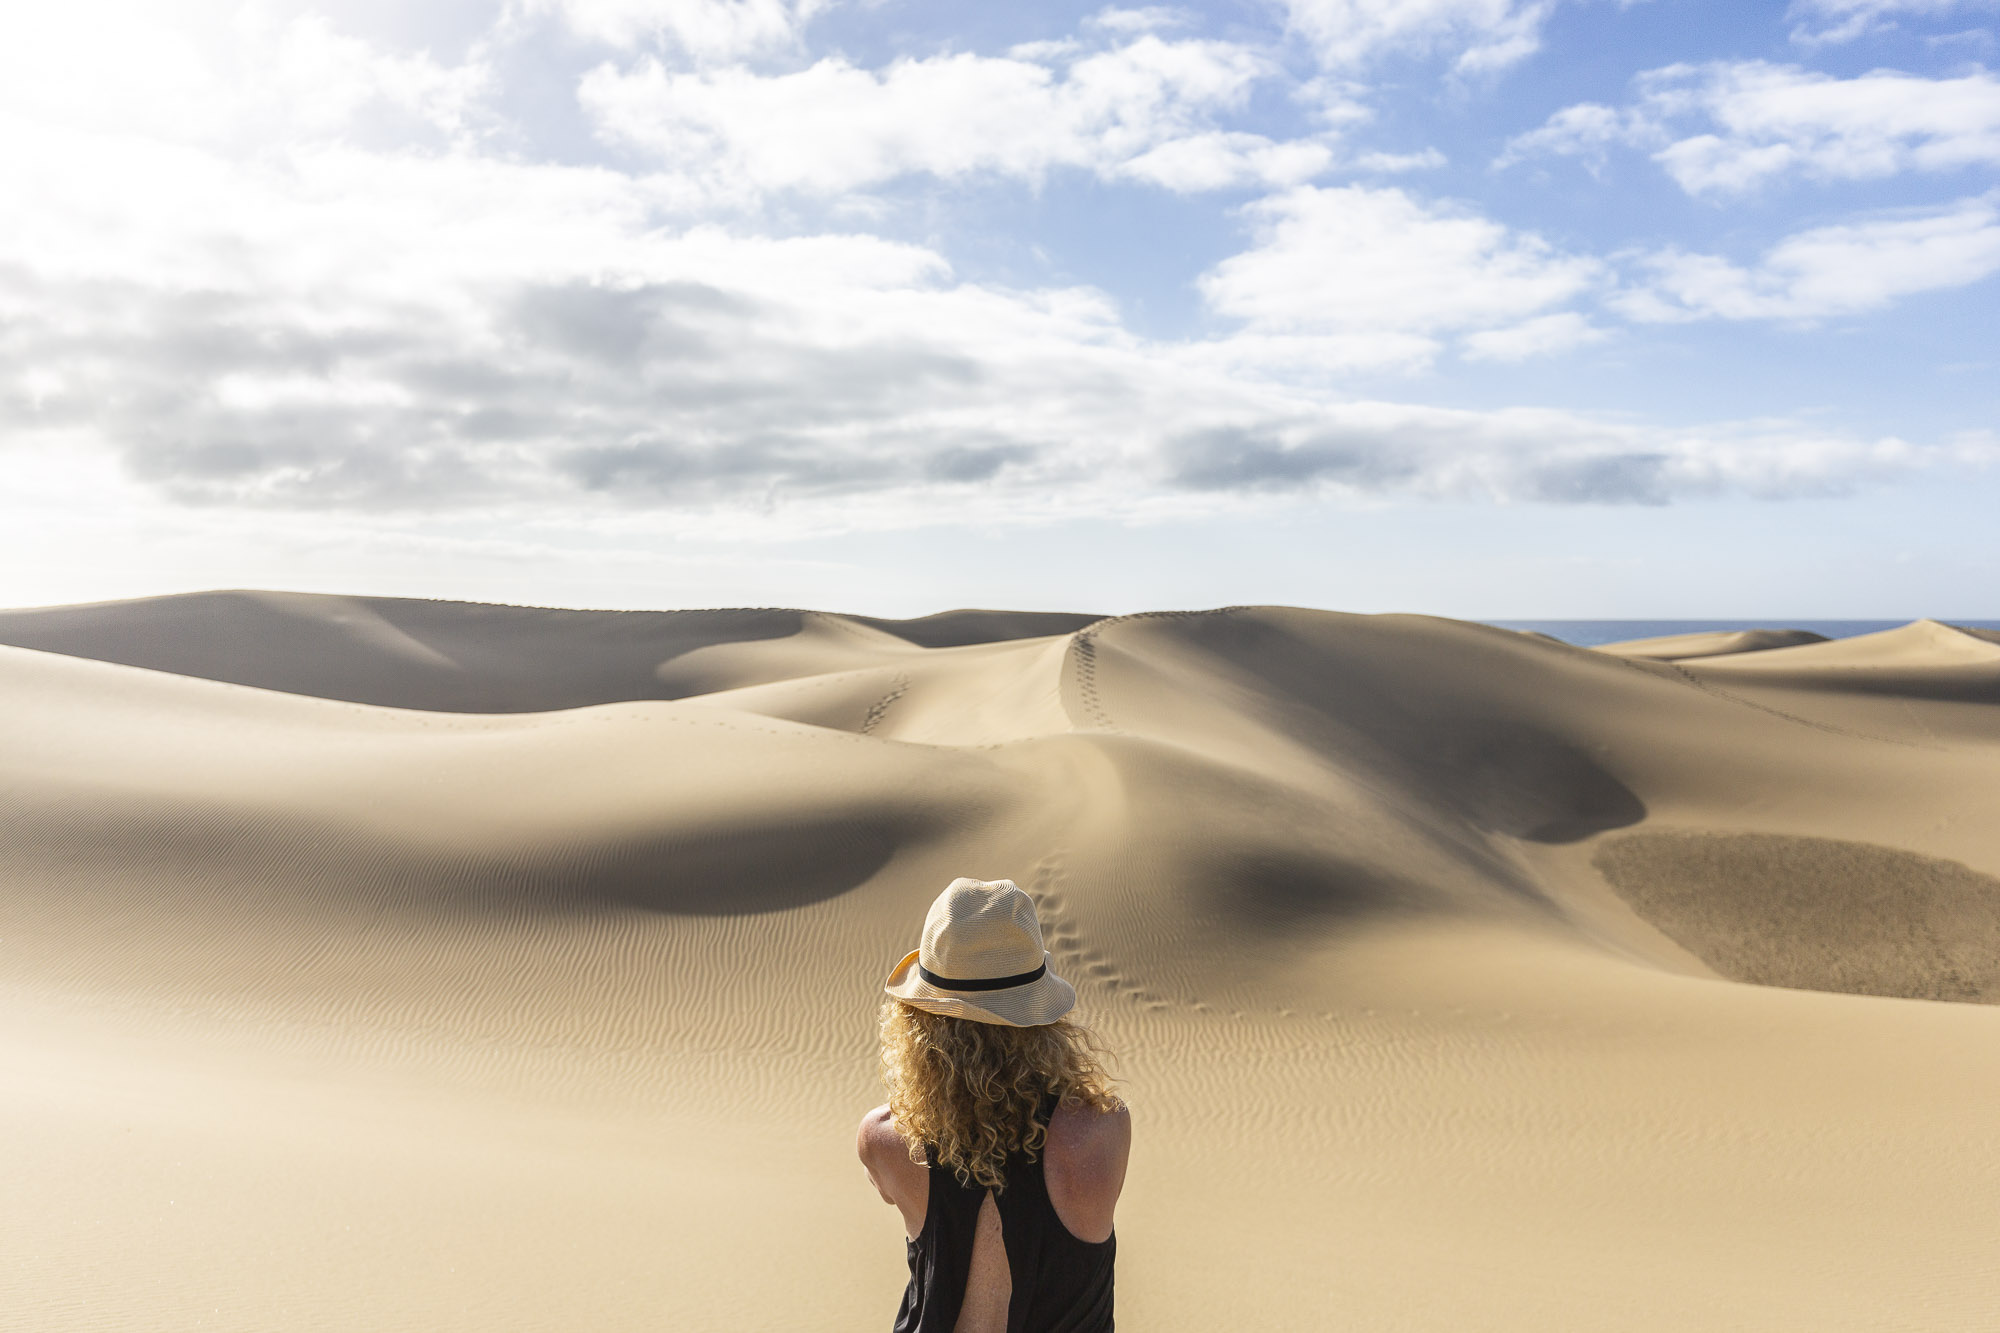 Shooting the dunes during a one-to-one photography workshop in Gran Canaria